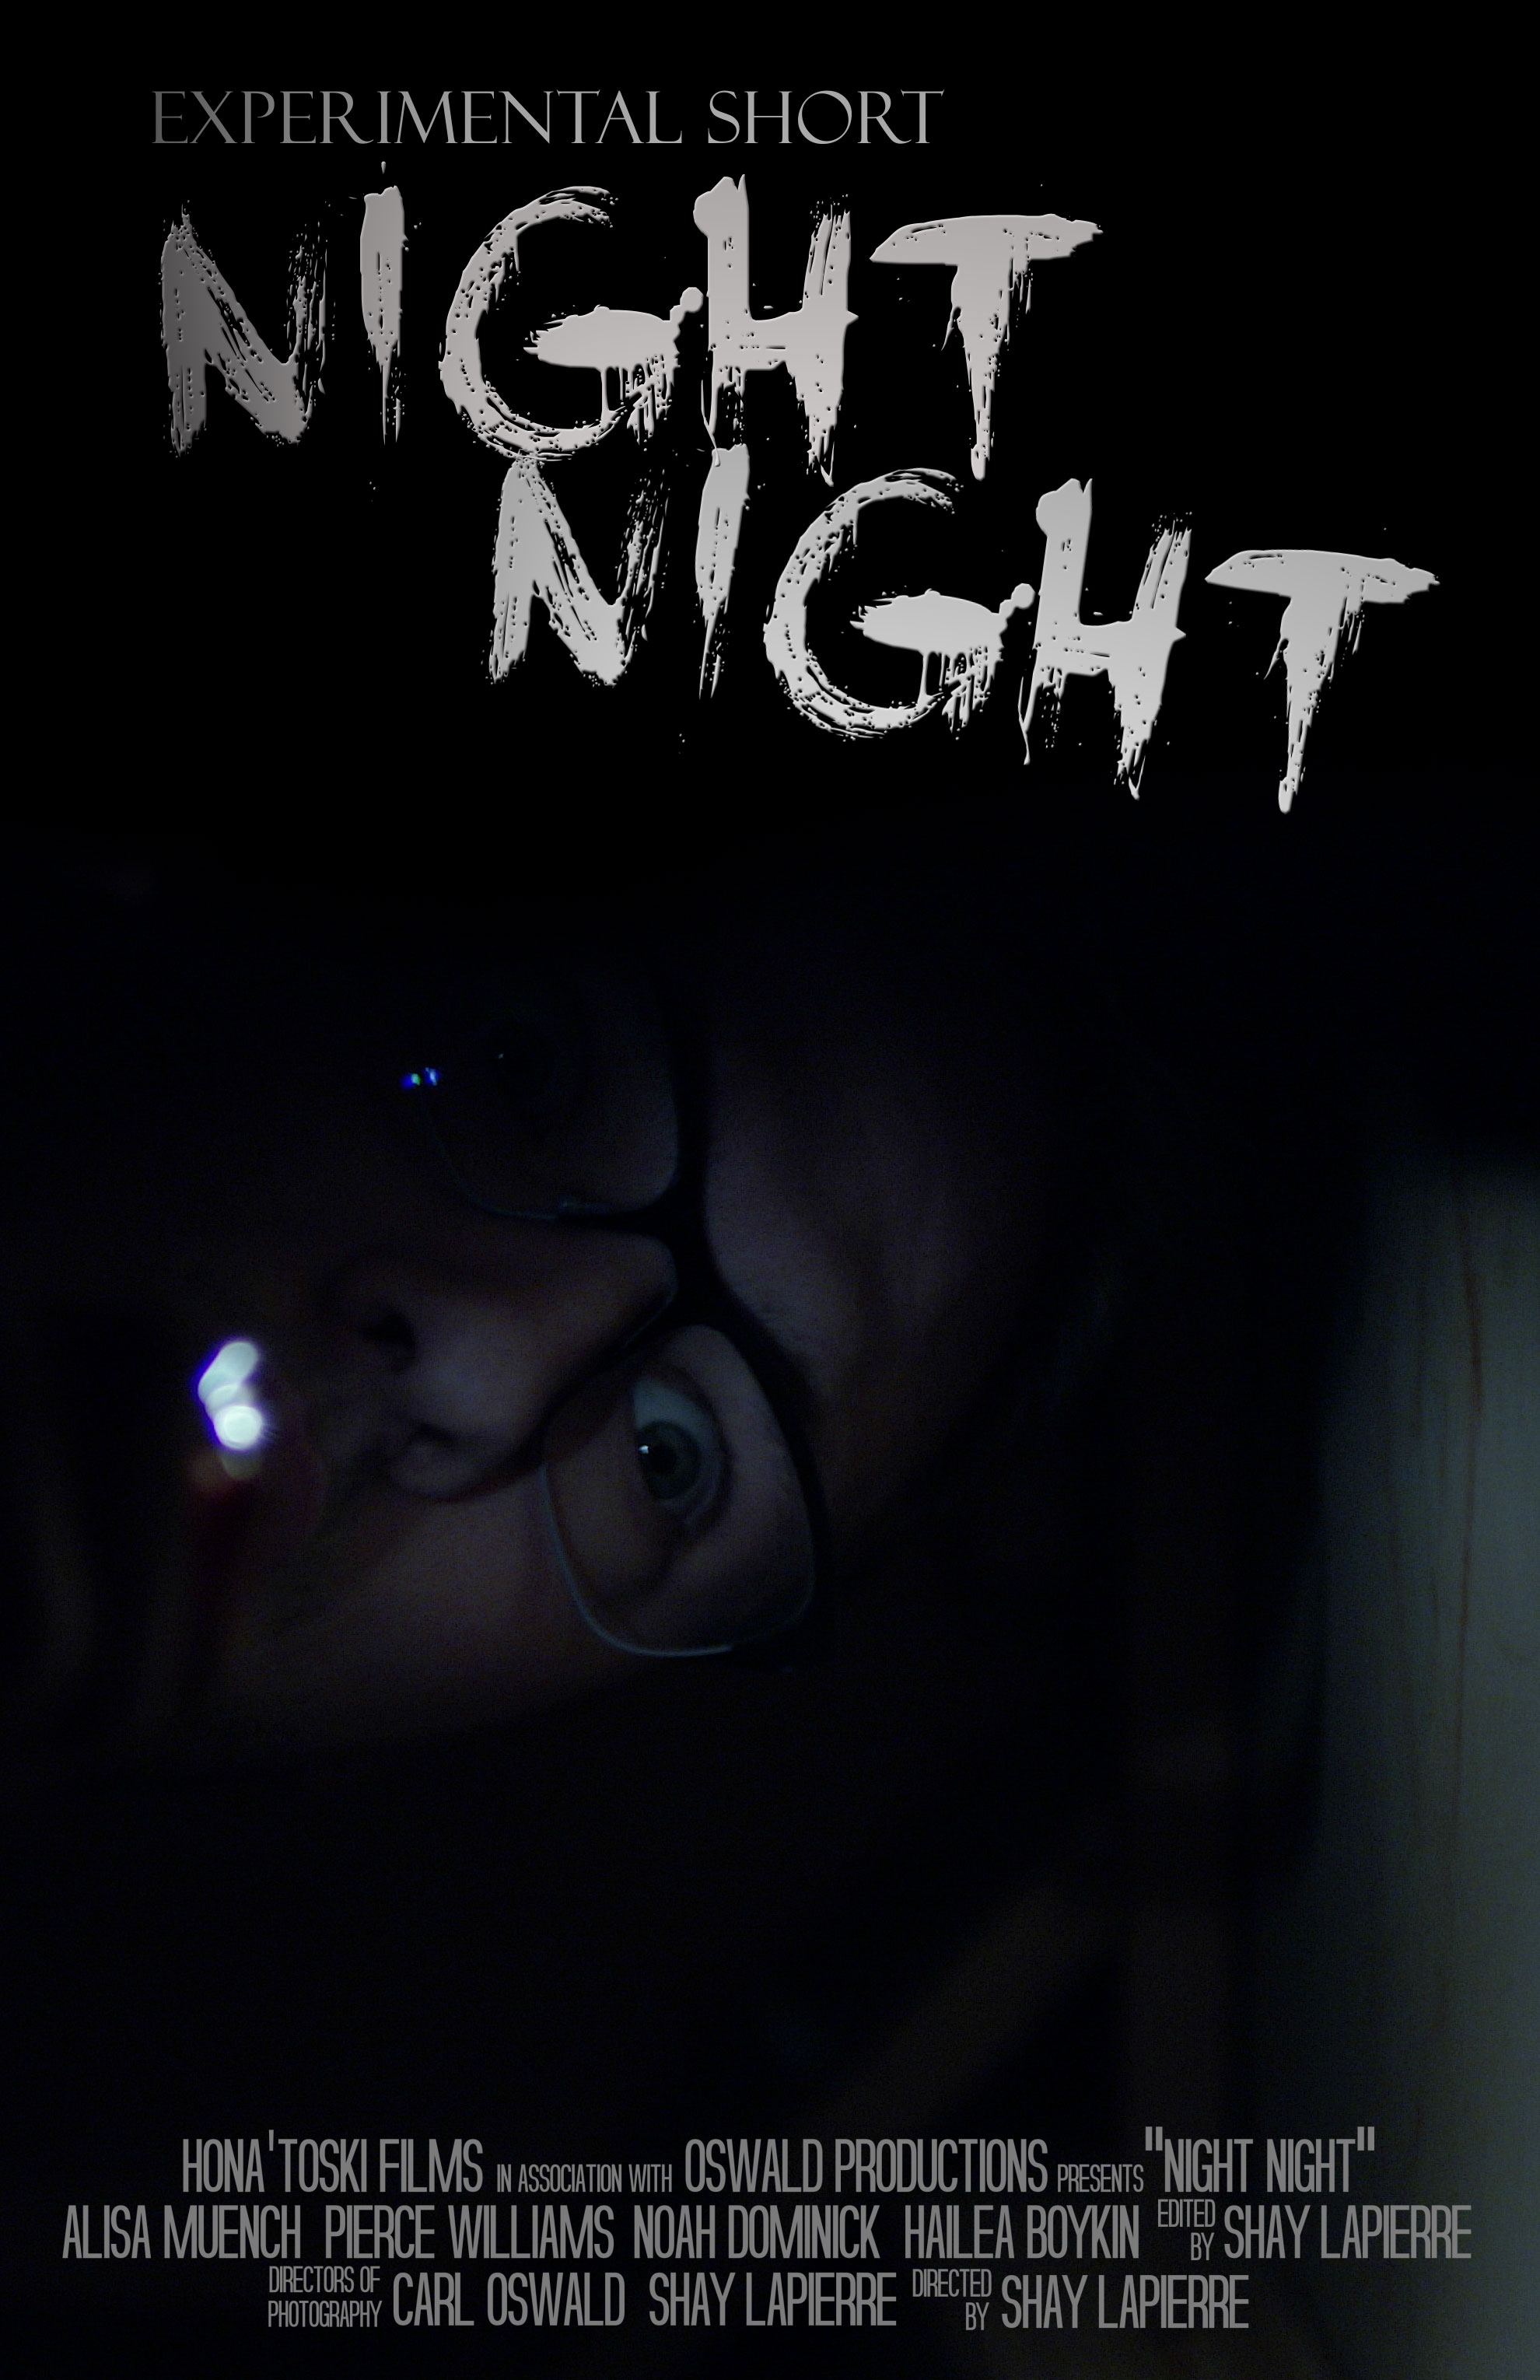 Night Night - Directed by Carl Oswald and Shay LaPierreThere's no need to search for they will seek, the depths of your mind have risen and leaked.